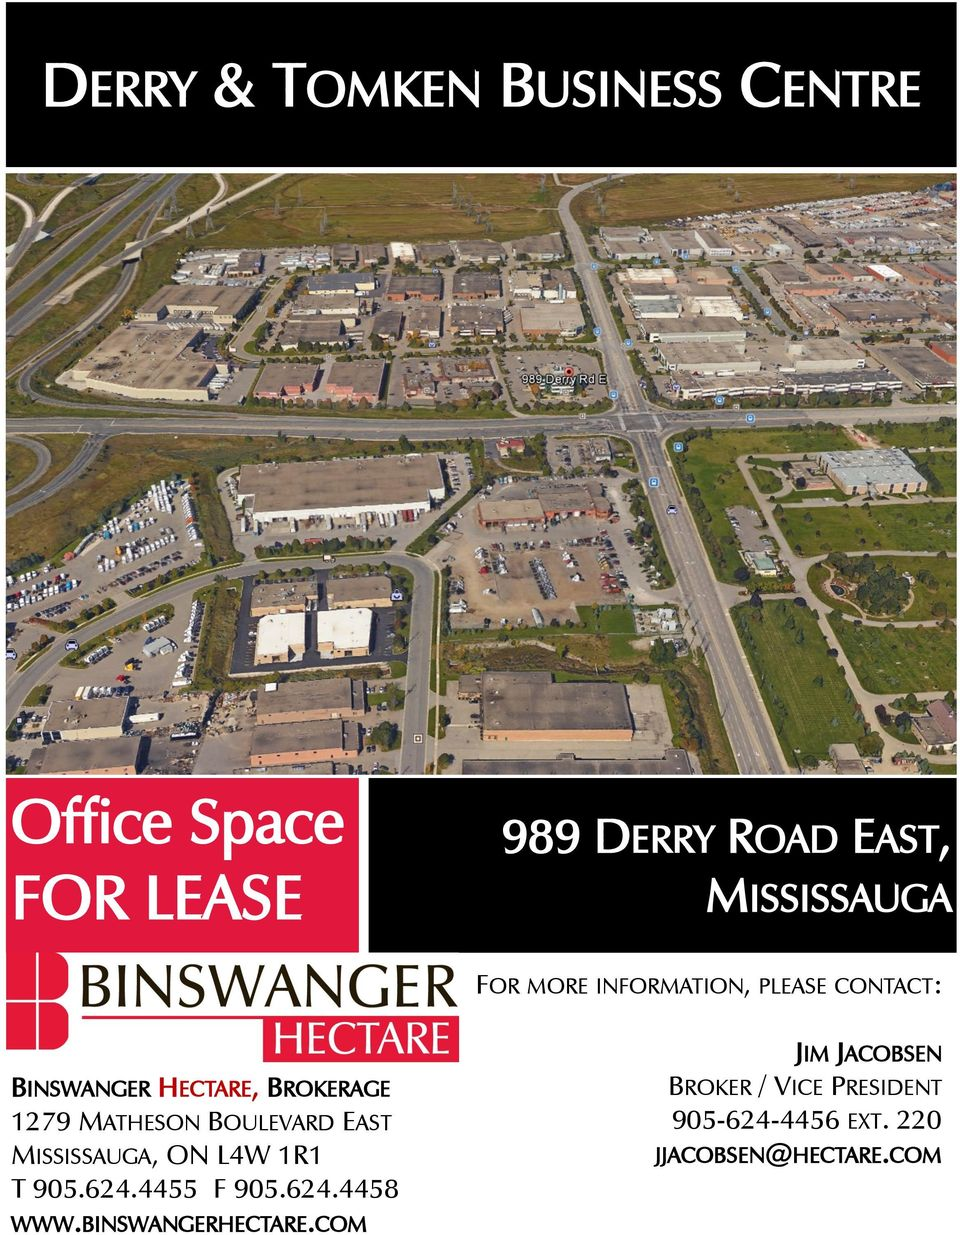 MATHESON BOULEVARD EAST MISSISSAUGA, ON L4W 1R1 T 905.624.4455 F 905.624.4458 WWW.